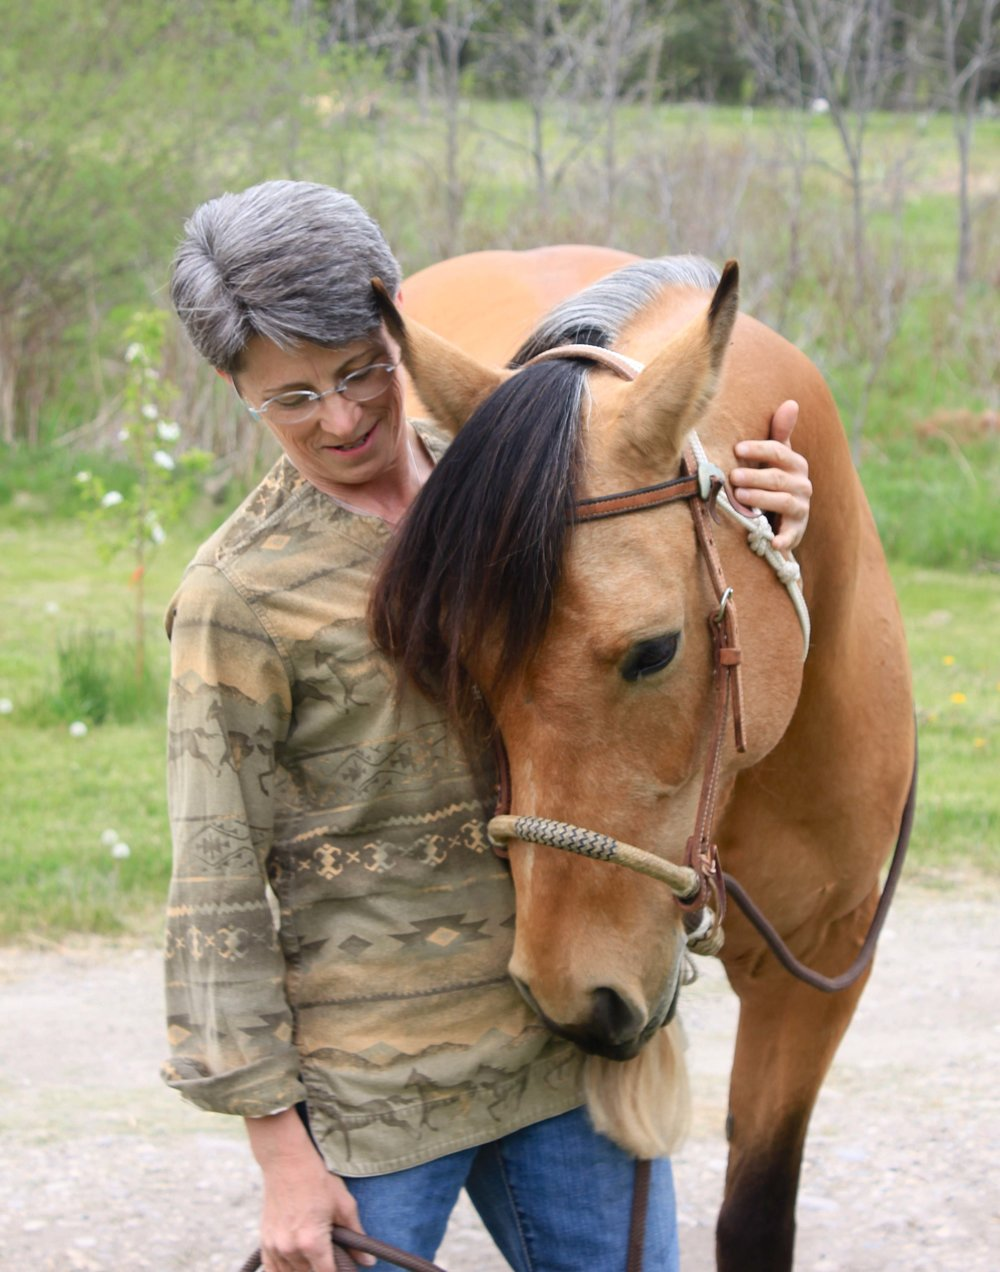 Jean Abernathy and her horse, Willow.